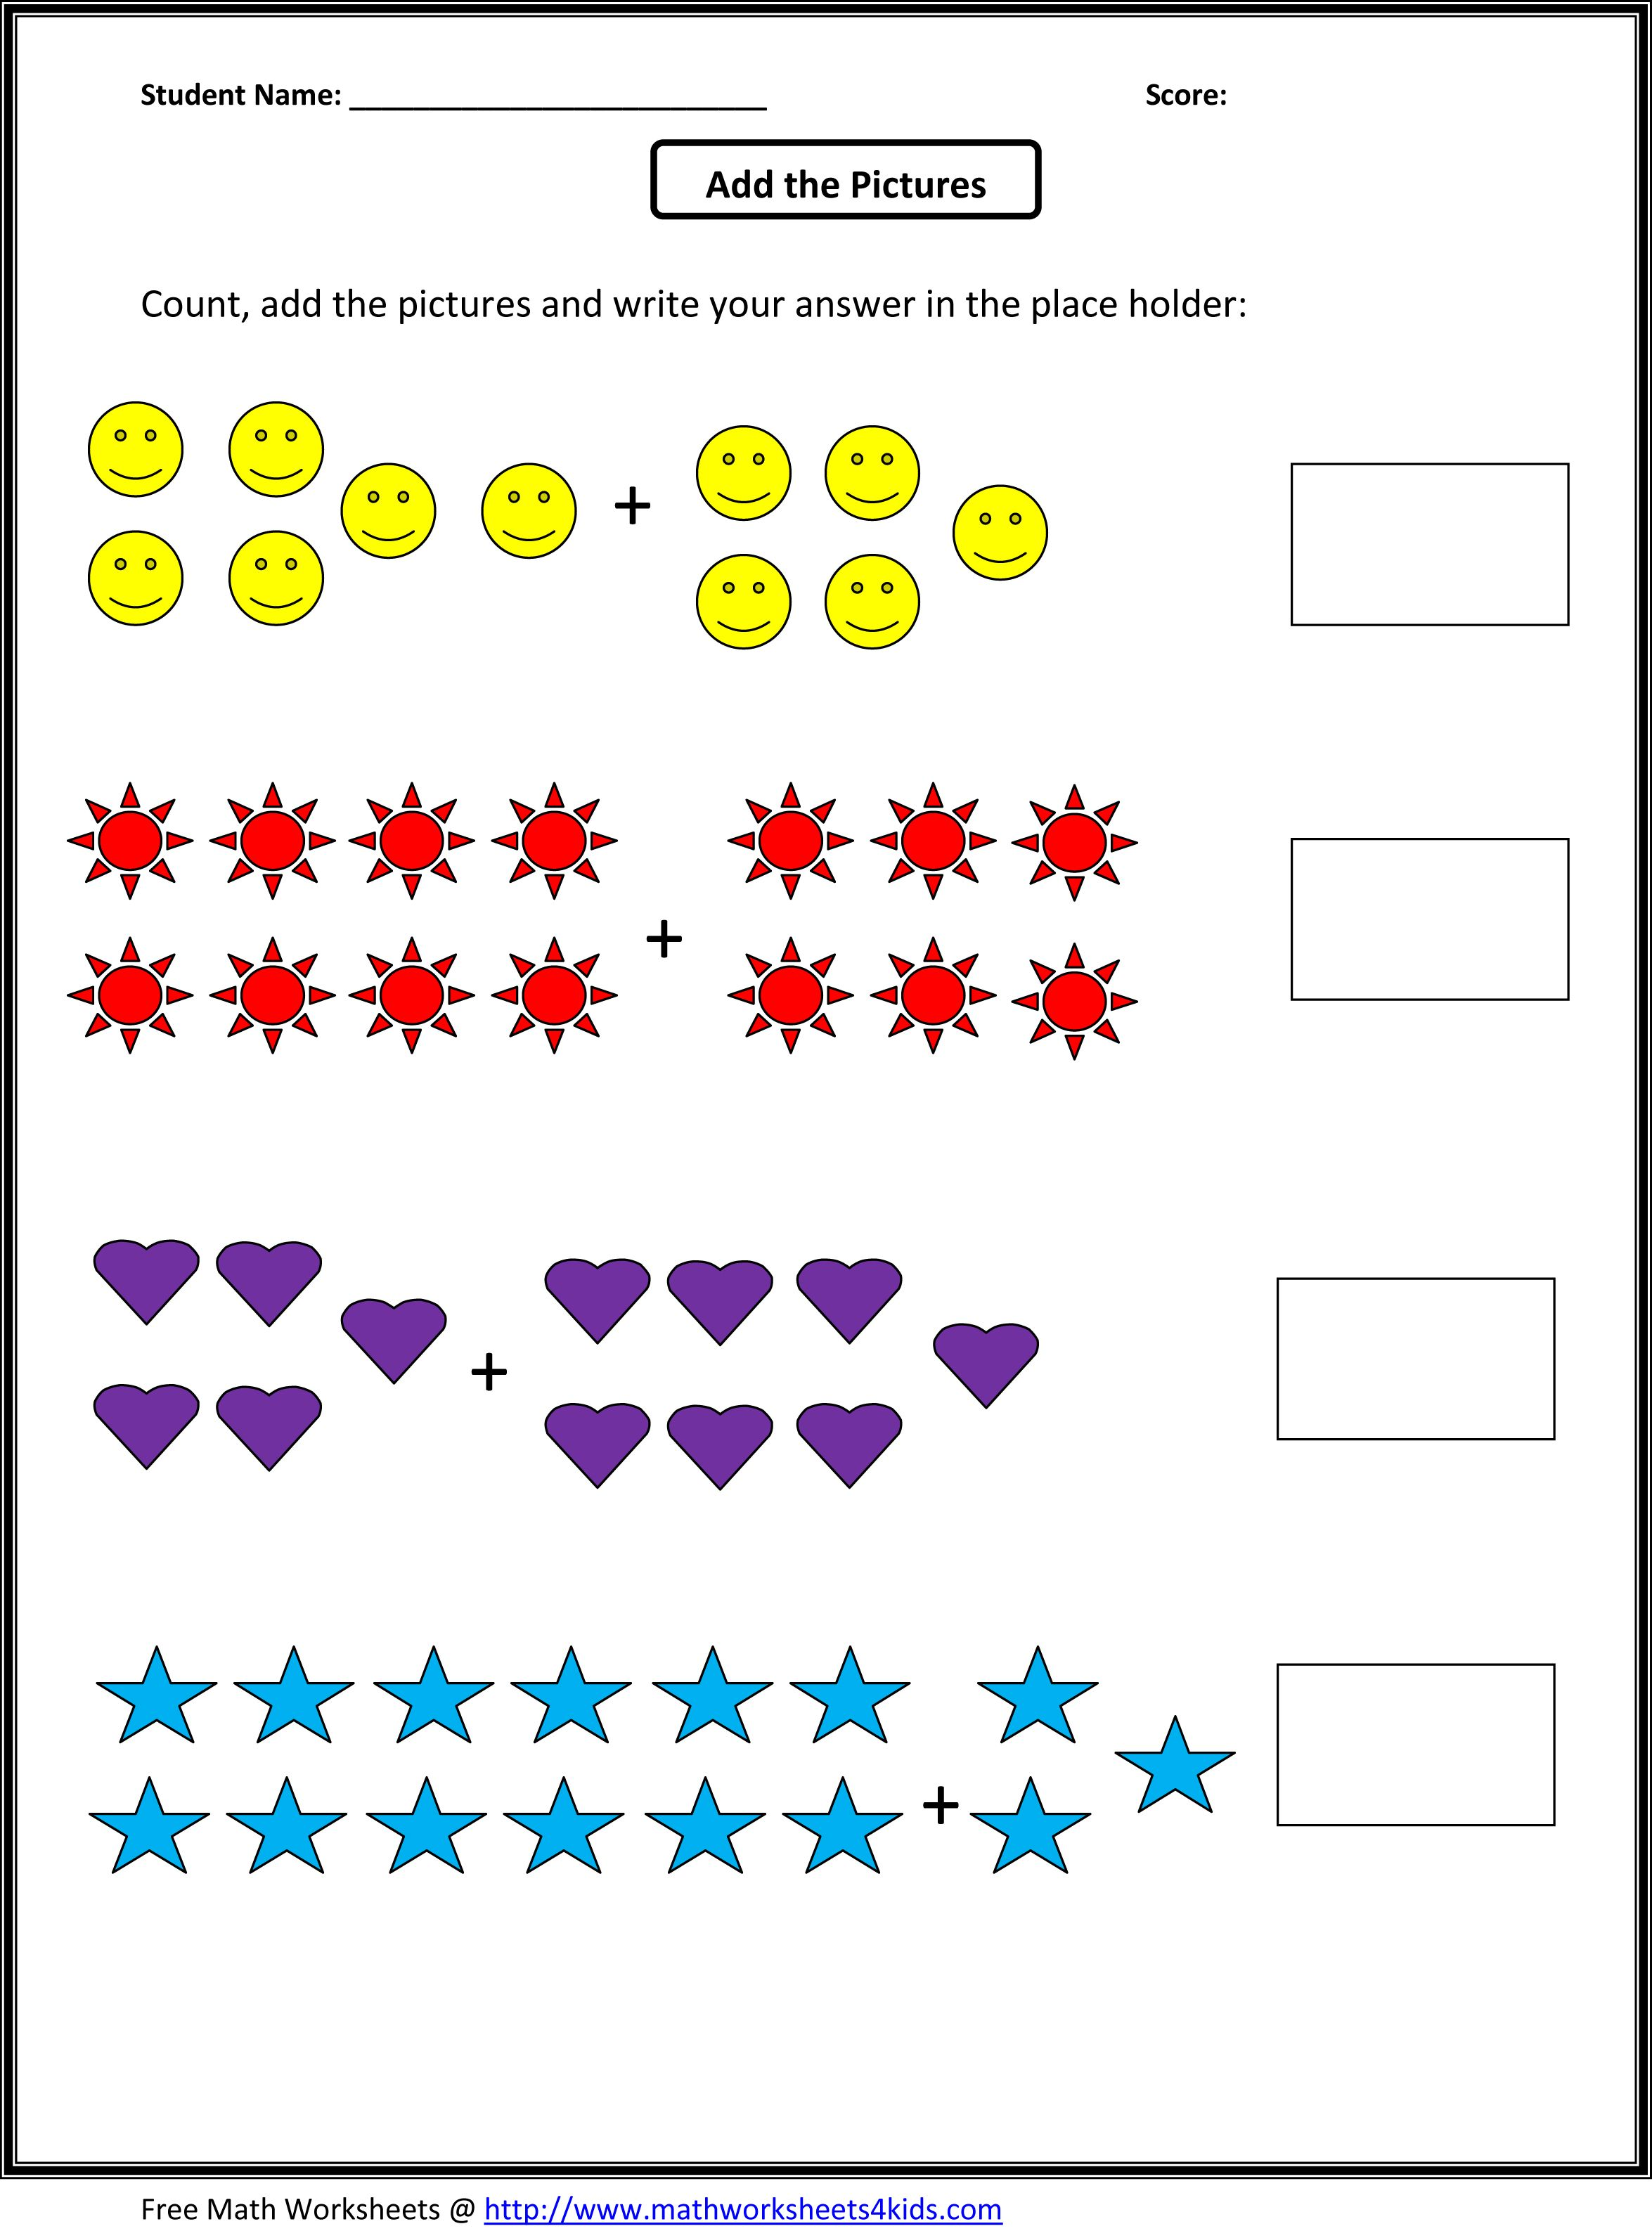 Aldiablosus  Pleasant Worksheet For Math Grade   Coffemix With Licious  Images About School On Pinterest  Mental Maths Worksheets  With Delightful Multiple Digit Addition Worksheets Also Adding  Digit Numbers Worksheet In Addition Free Kids Printable Worksheets And Credit Worksheet As Well As Metric Measurement Worksheets Middle School Additionally Year  Algebra Worksheets From Coffemixcom With Aldiablosus  Licious Worksheet For Math Grade   Coffemix With Delightful  Images About School On Pinterest  Mental Maths Worksheets  And Pleasant Multiple Digit Addition Worksheets Also Adding  Digit Numbers Worksheet In Addition Free Kids Printable Worksheets From Coffemixcom